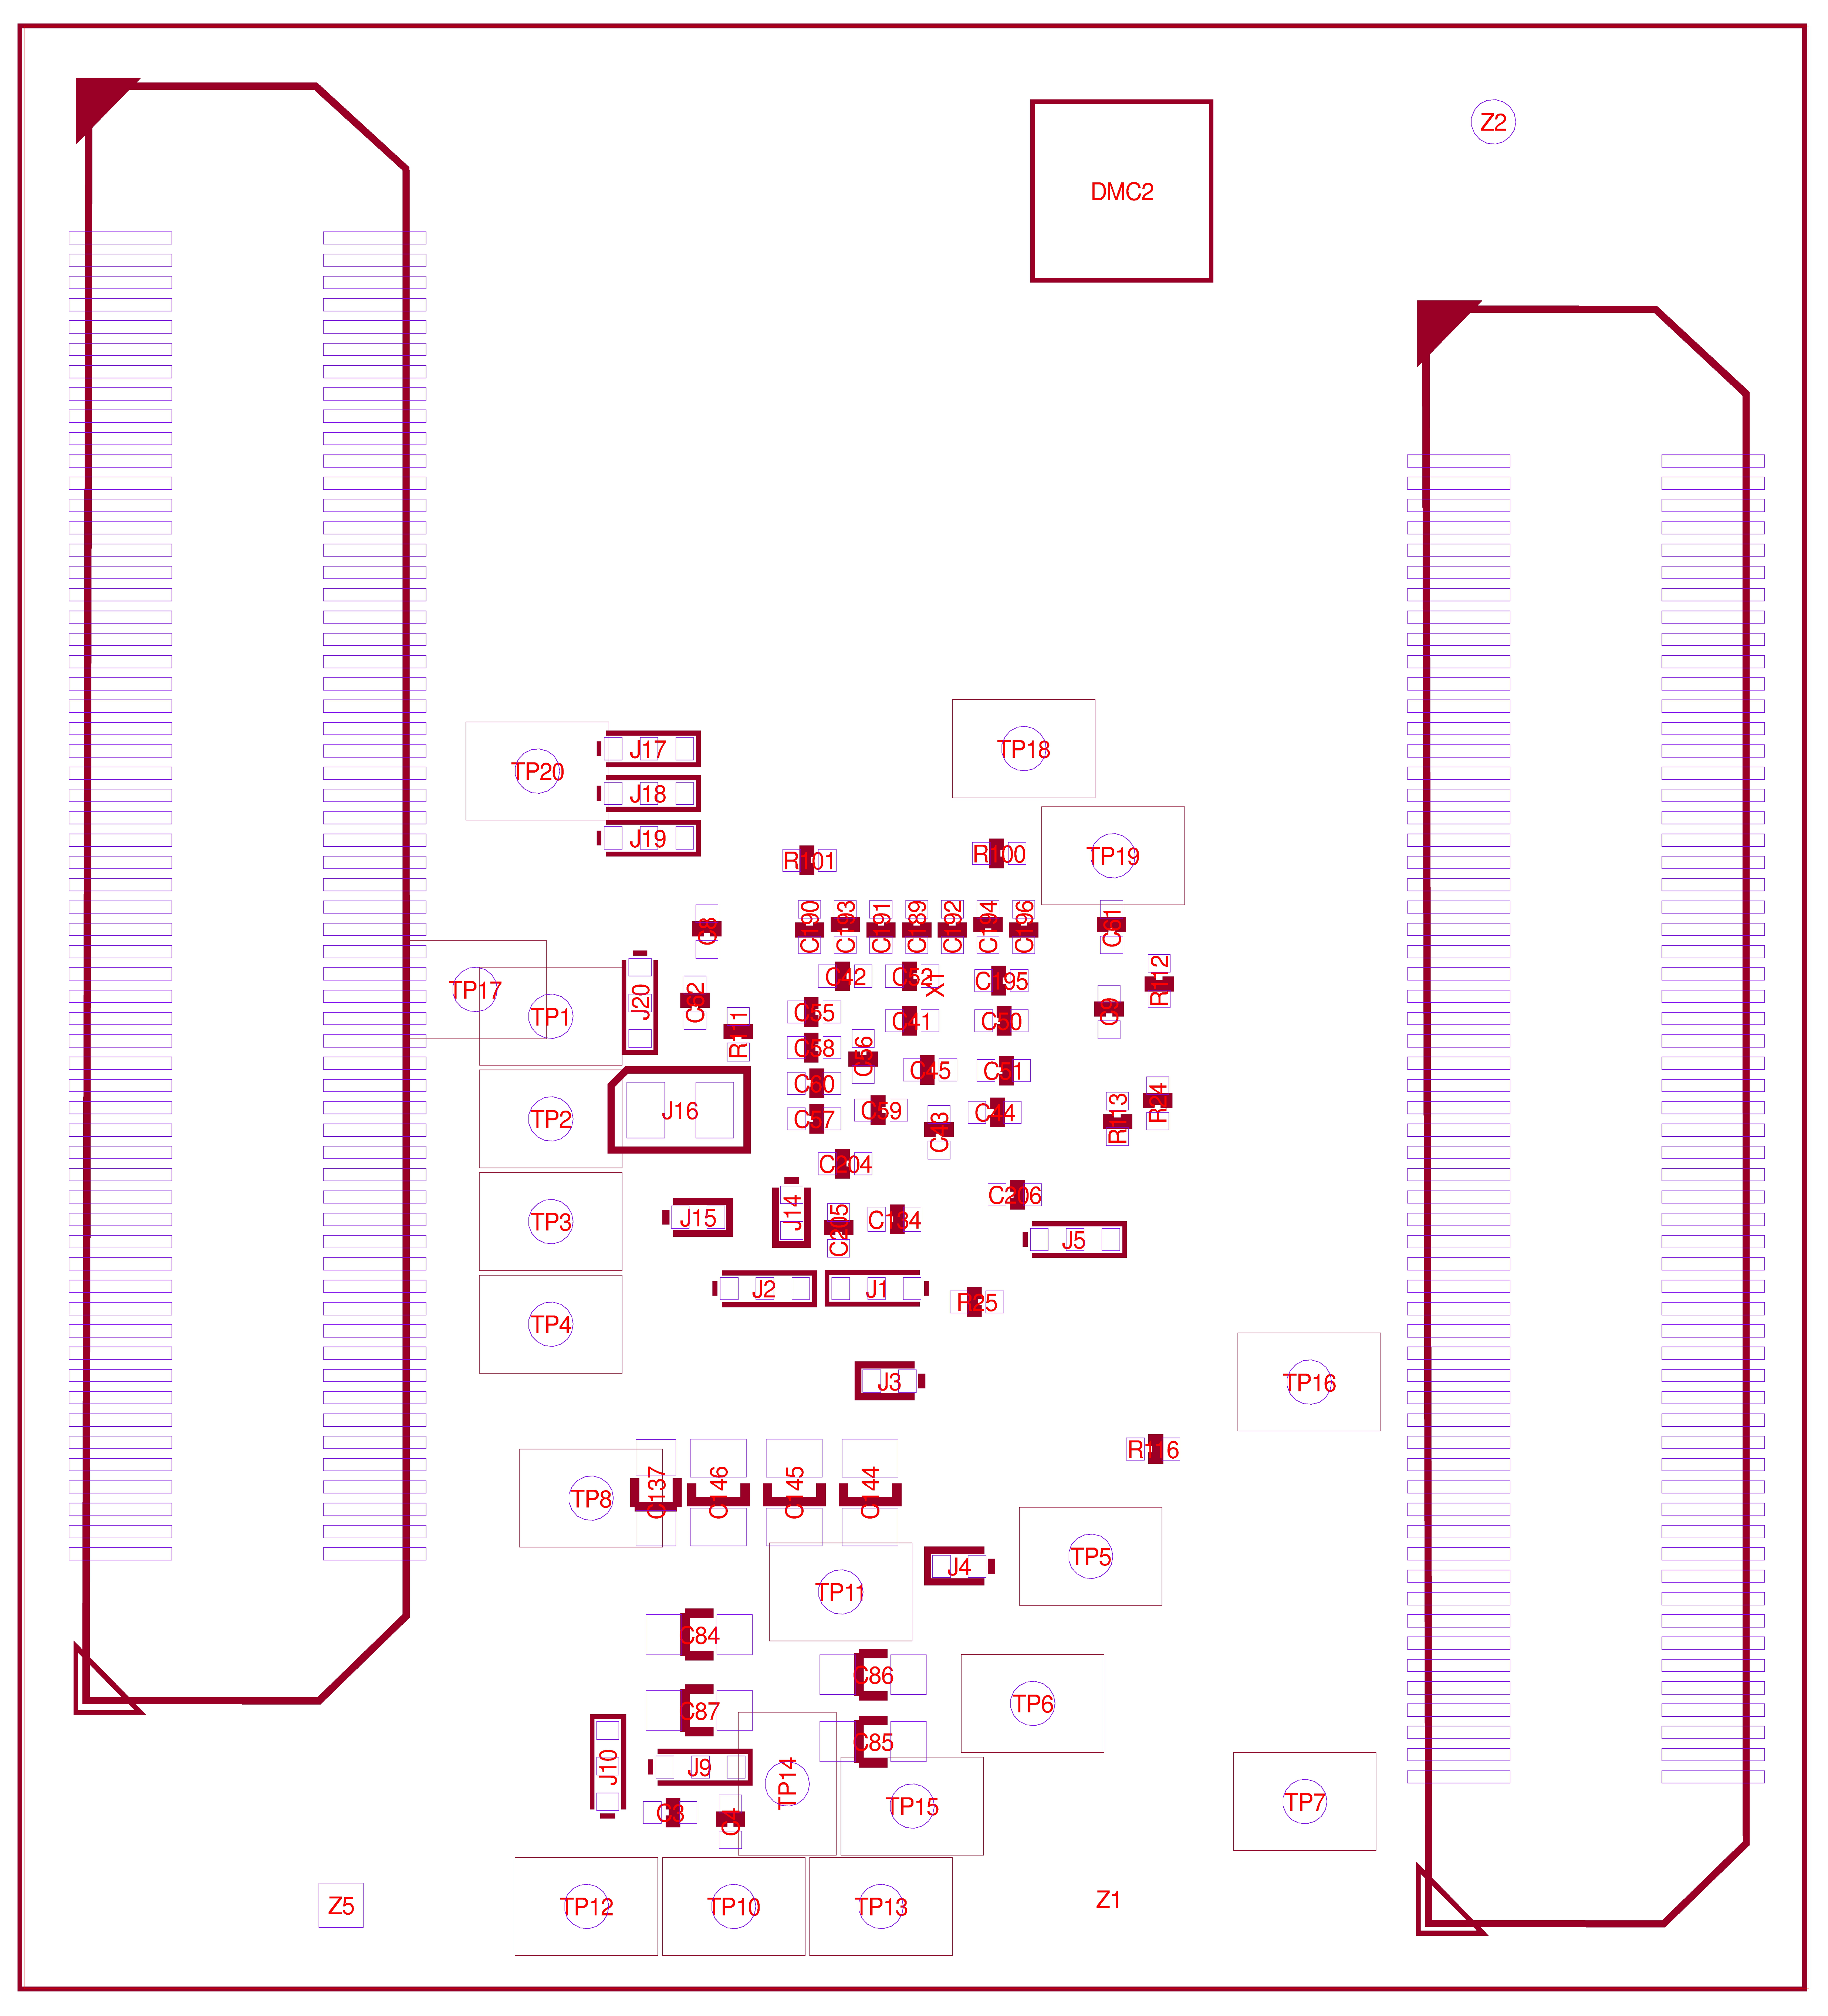 phyCORE-STM32MP1 Component Placement (Bottom View)